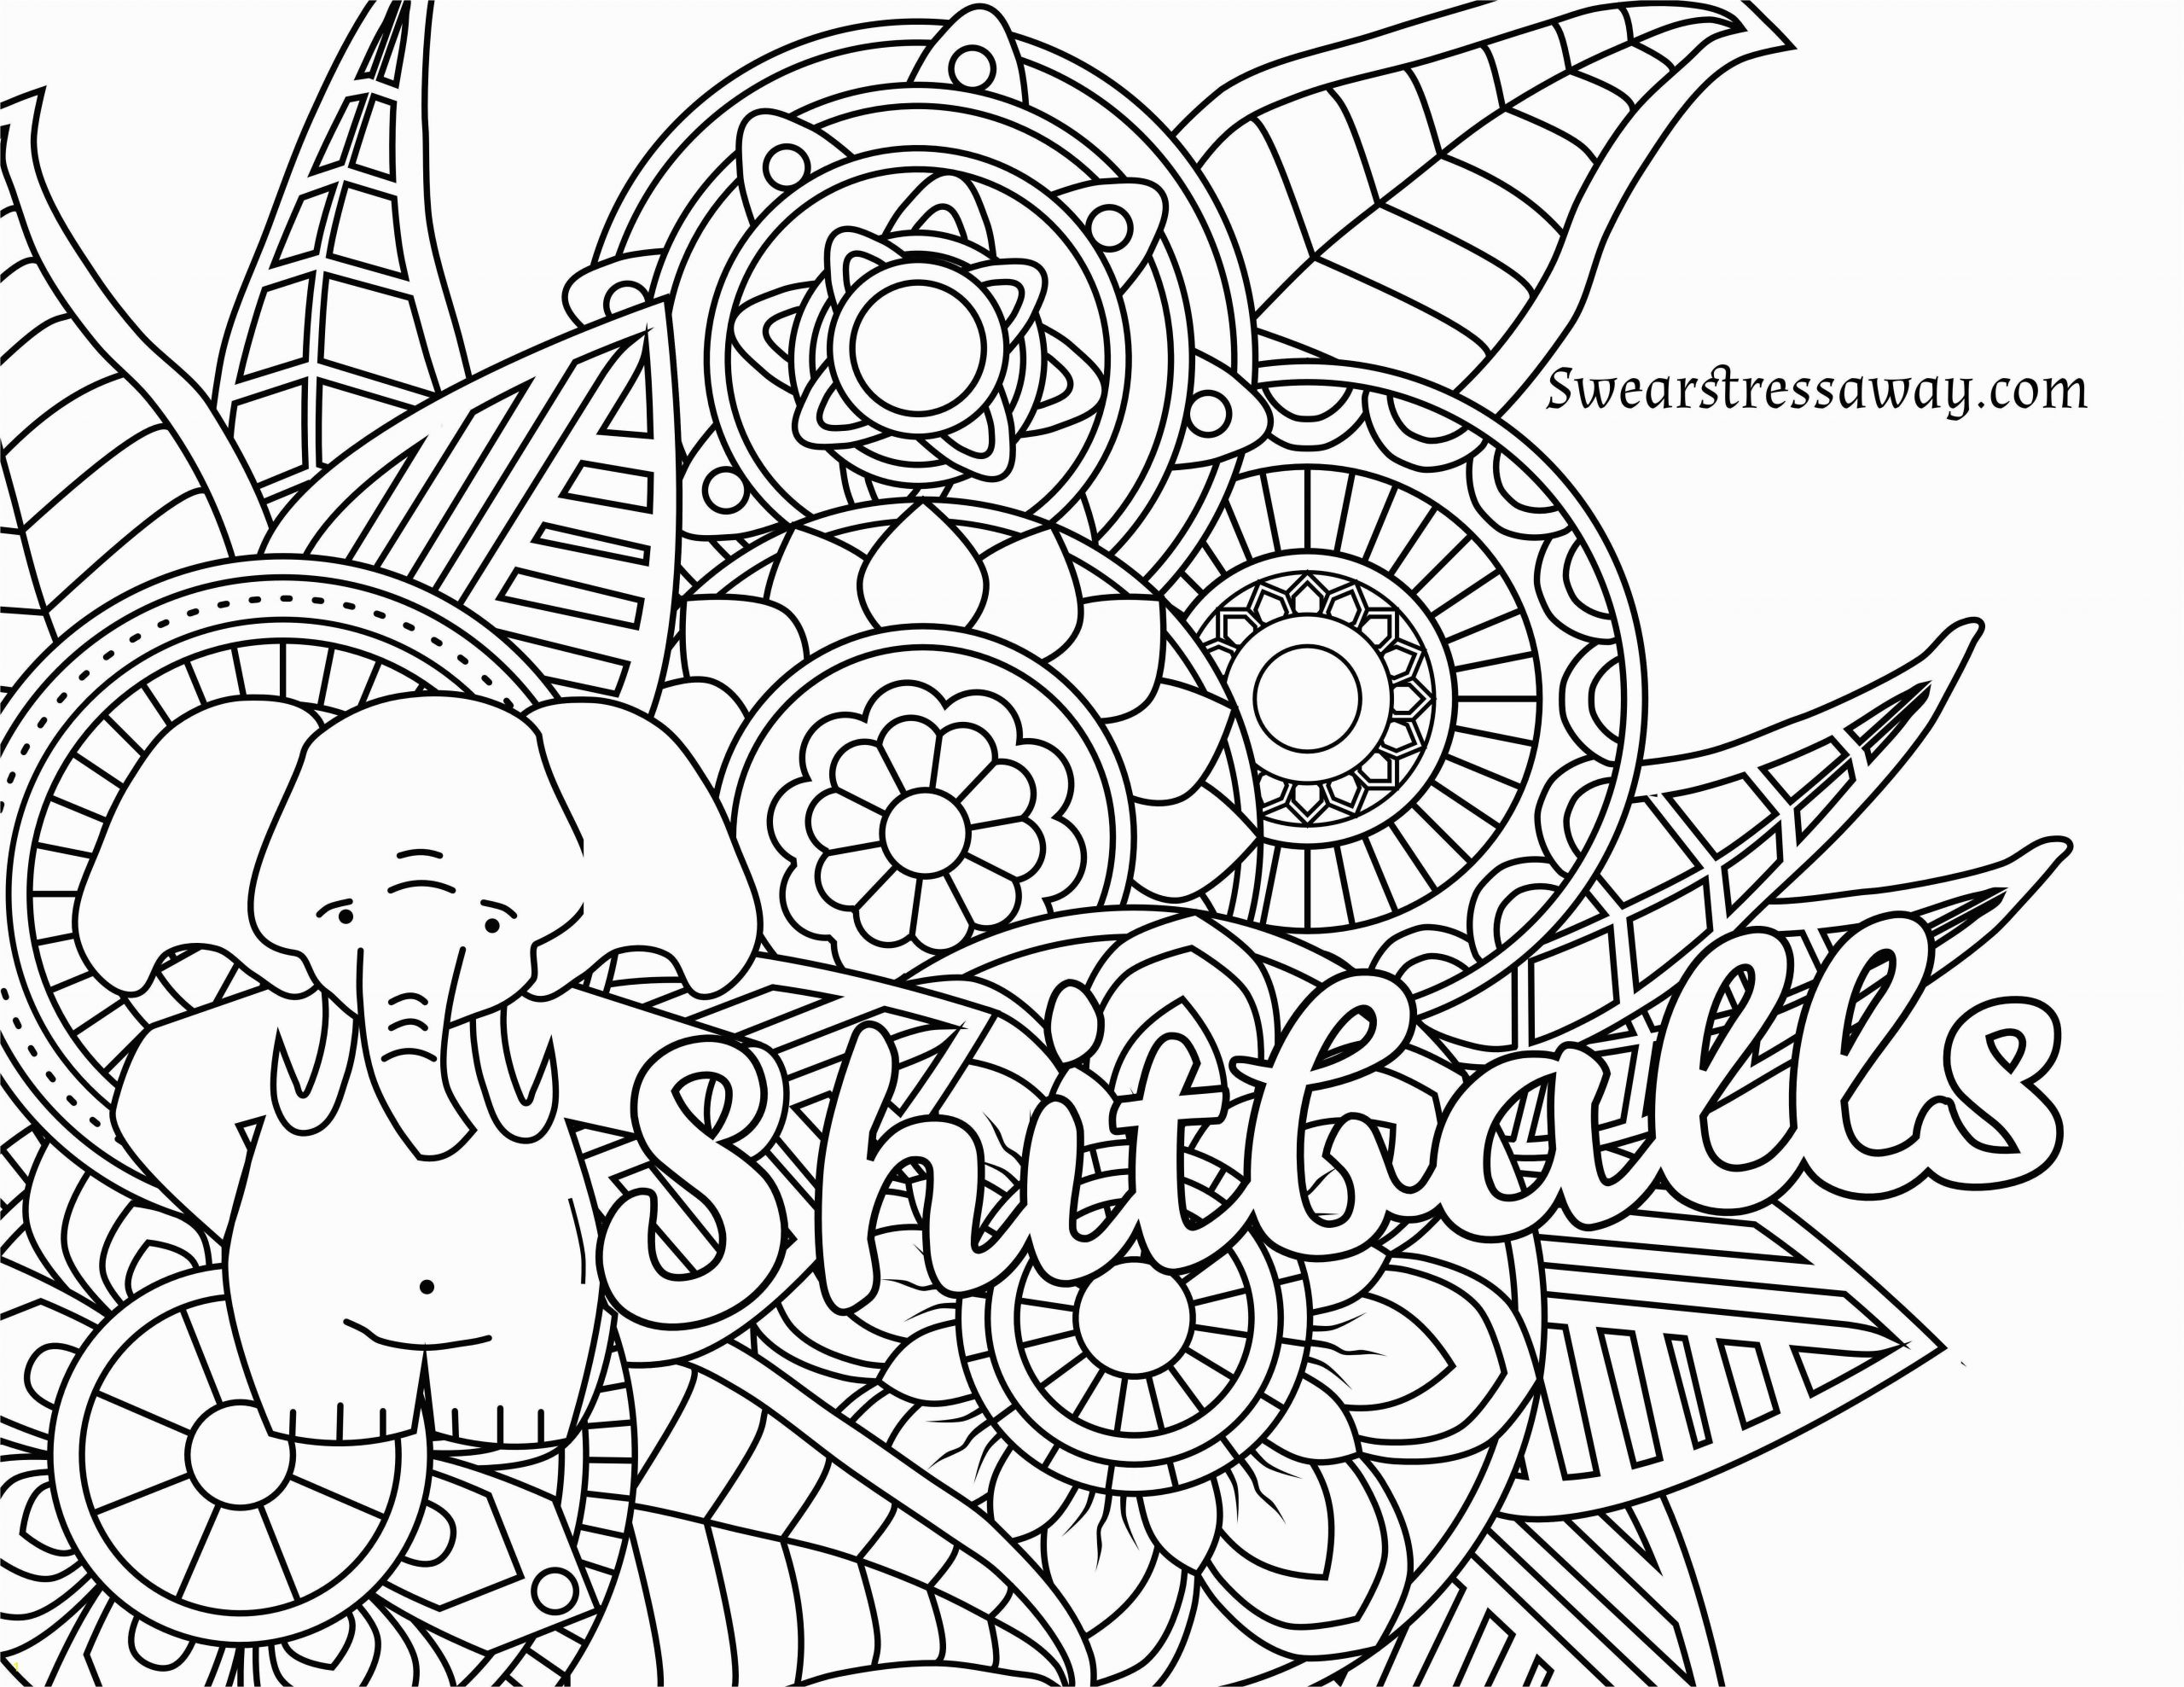 curse word coloring book lovely swearresh awesome pageor adult od of printable pages animals